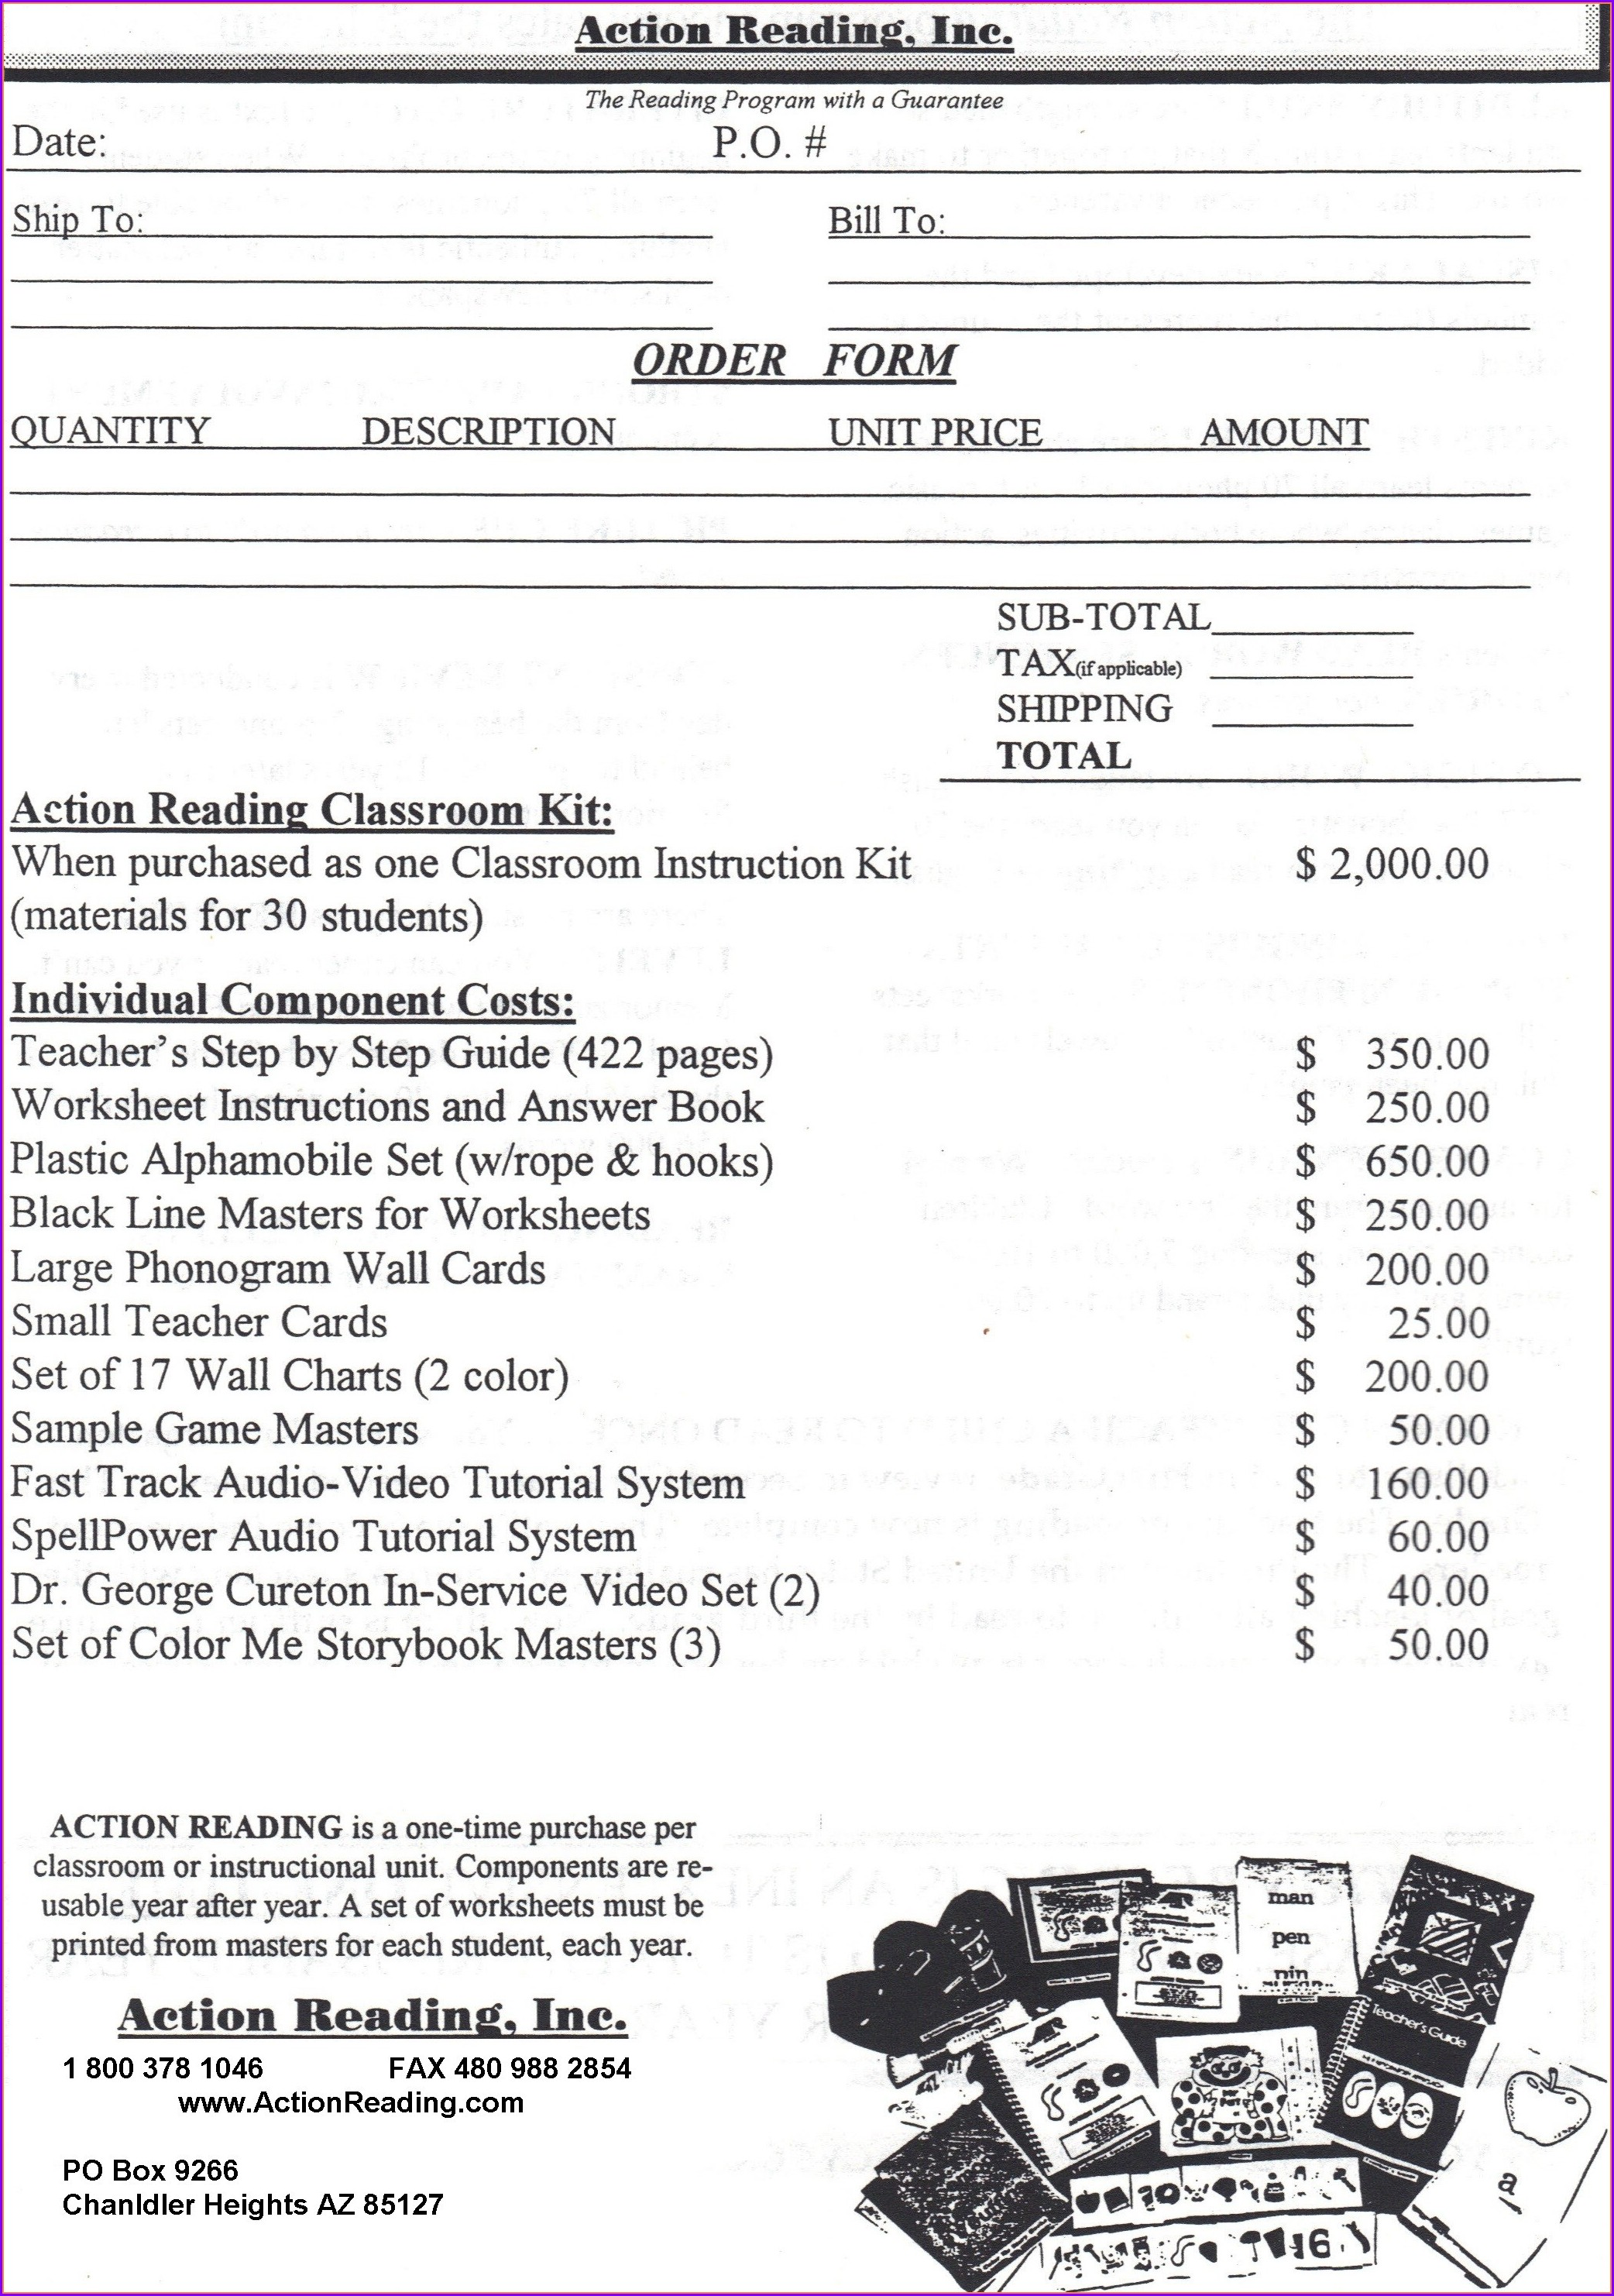 Child Support Worksheet California